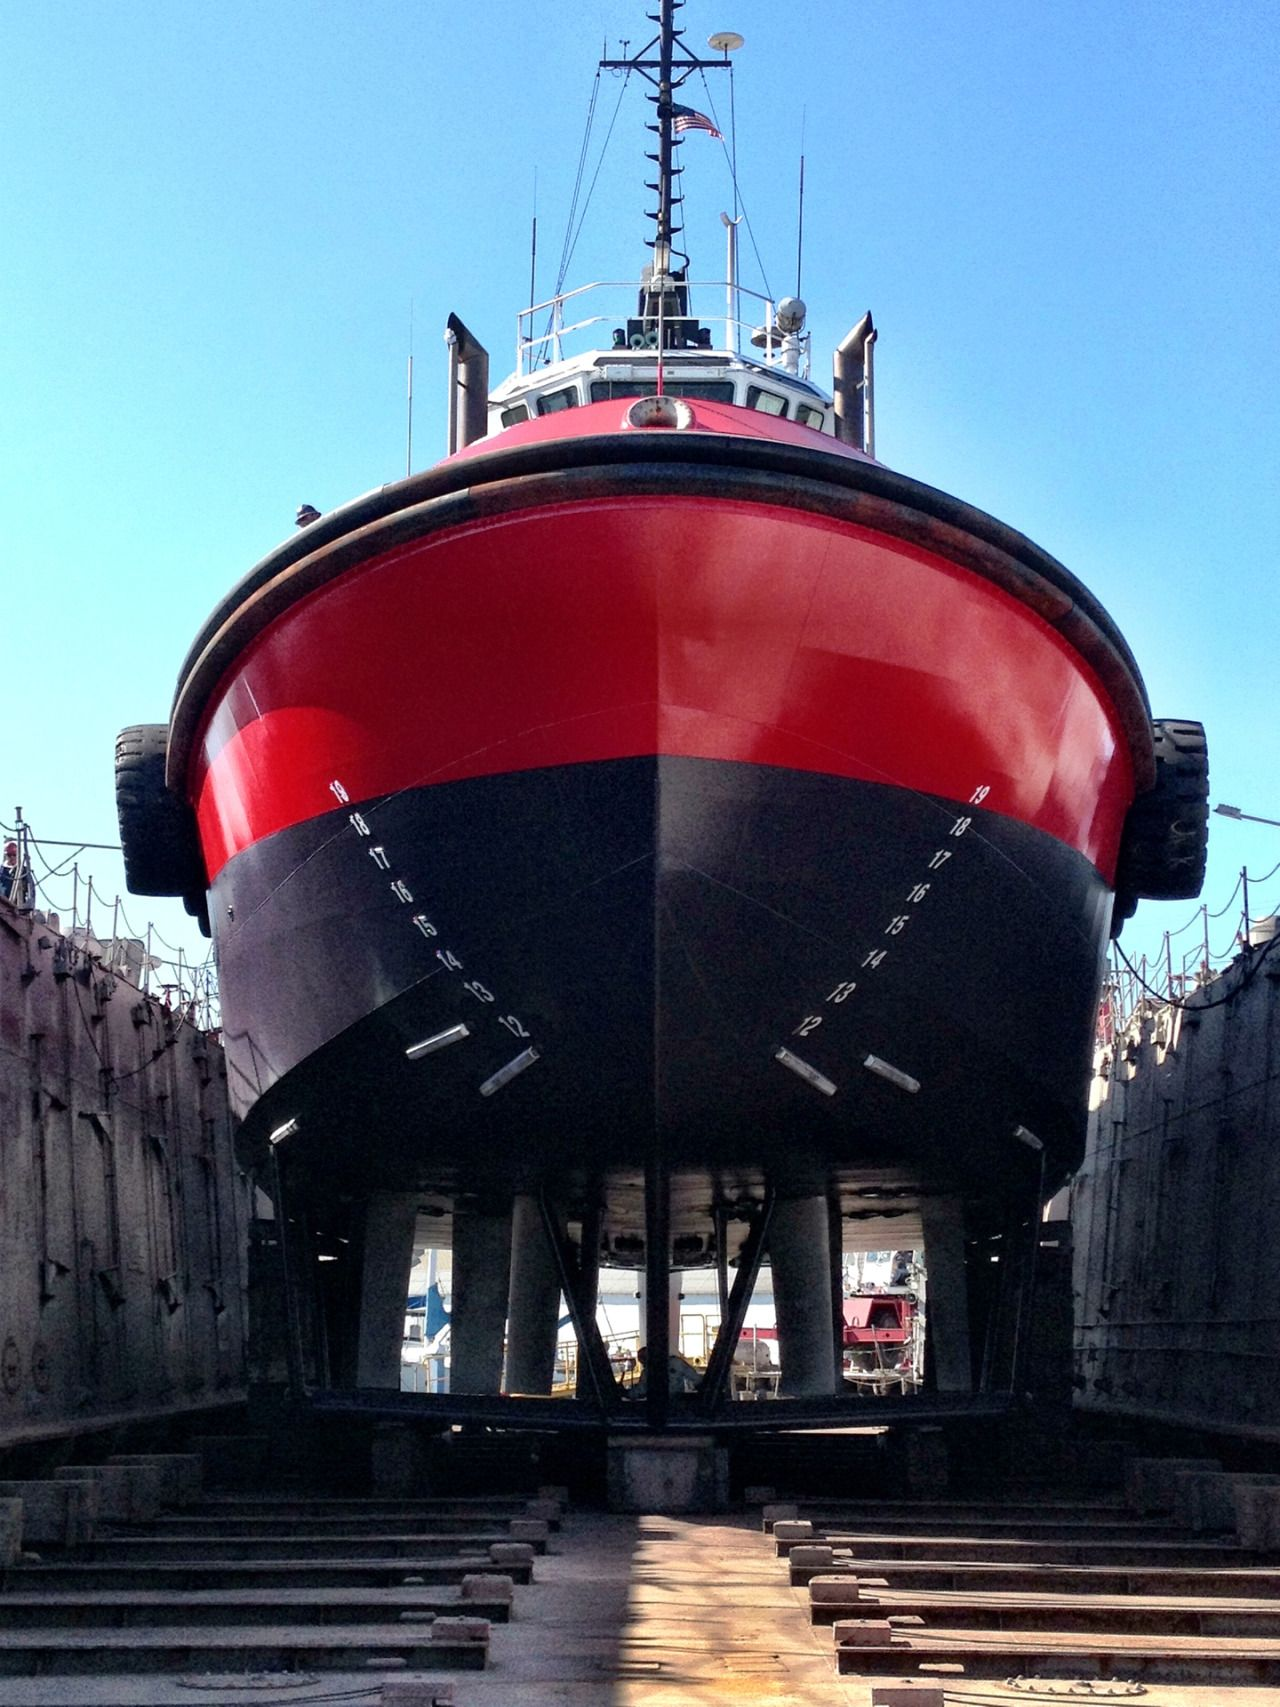 Image Of A Crowley Harbor Class Tug In Dry Dock Showing The Voith Schneider Propulsion Units Image By Author Tug Boats Boat Building Tug